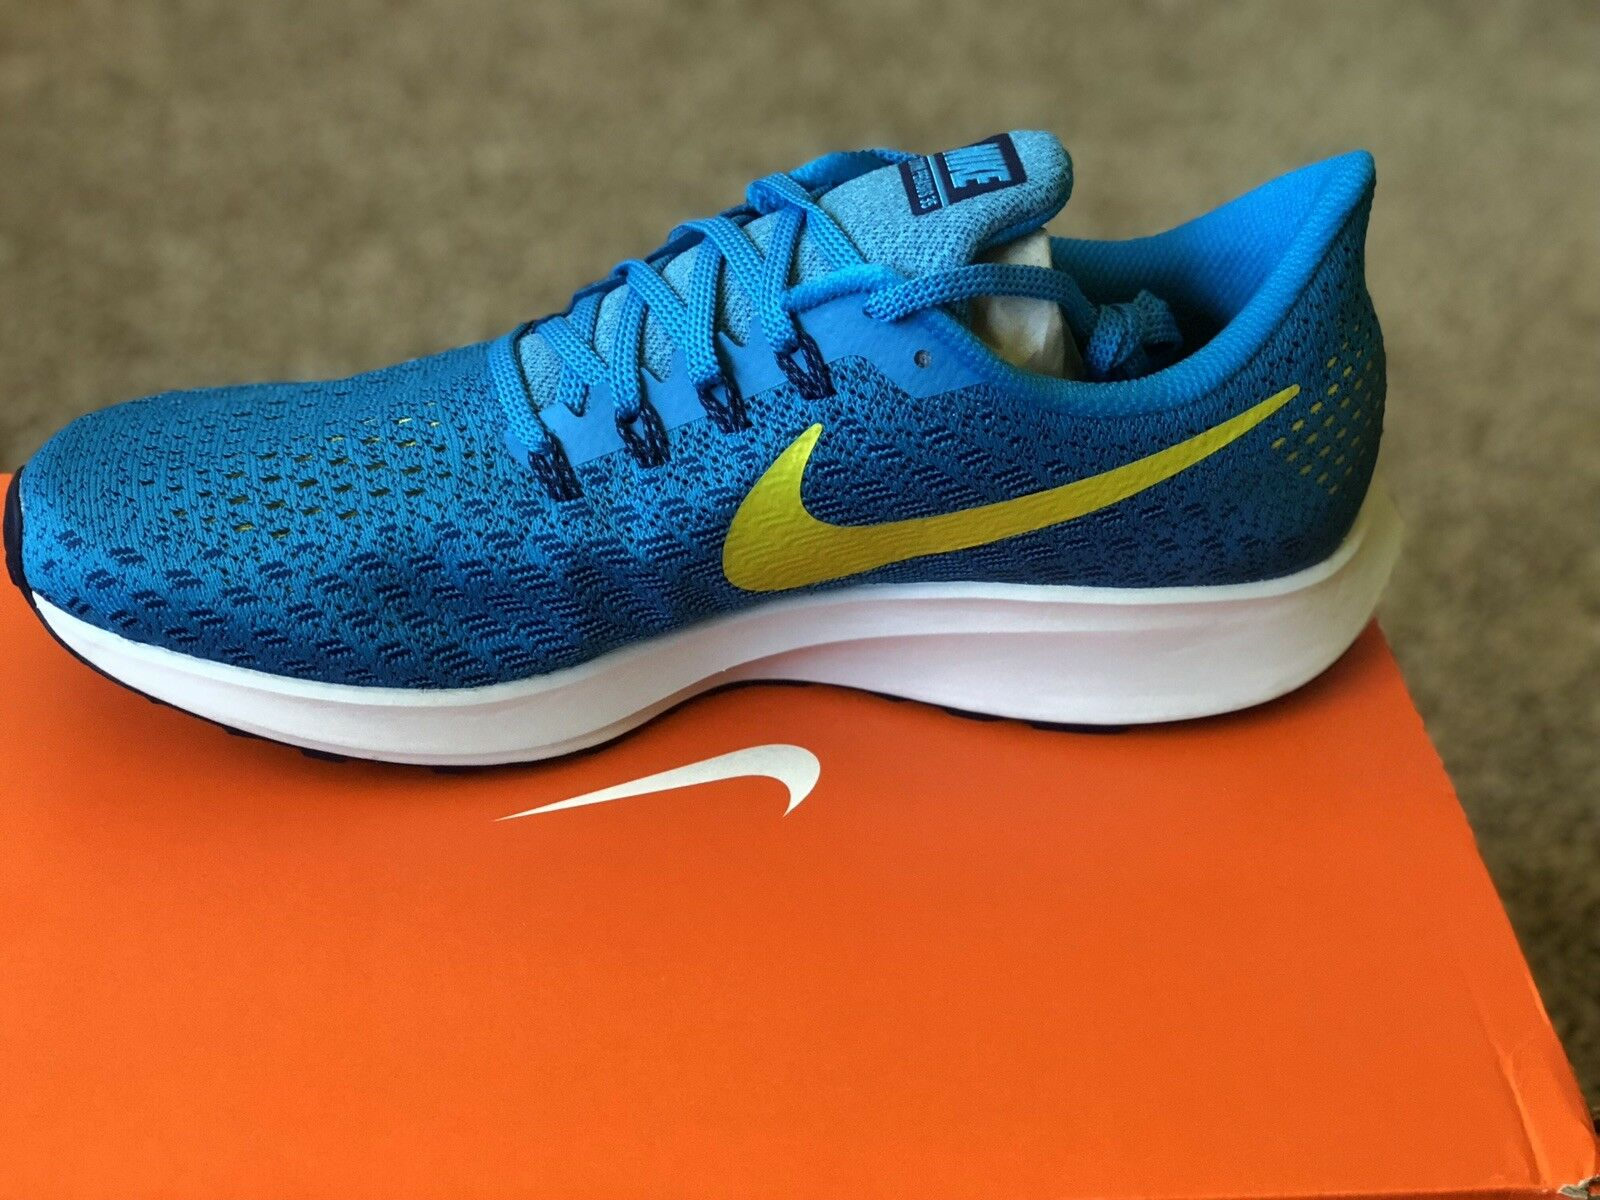 Nike Air Zoom Pegasus 35 [942851-400] Men Running shoes blueee Orbit Citron